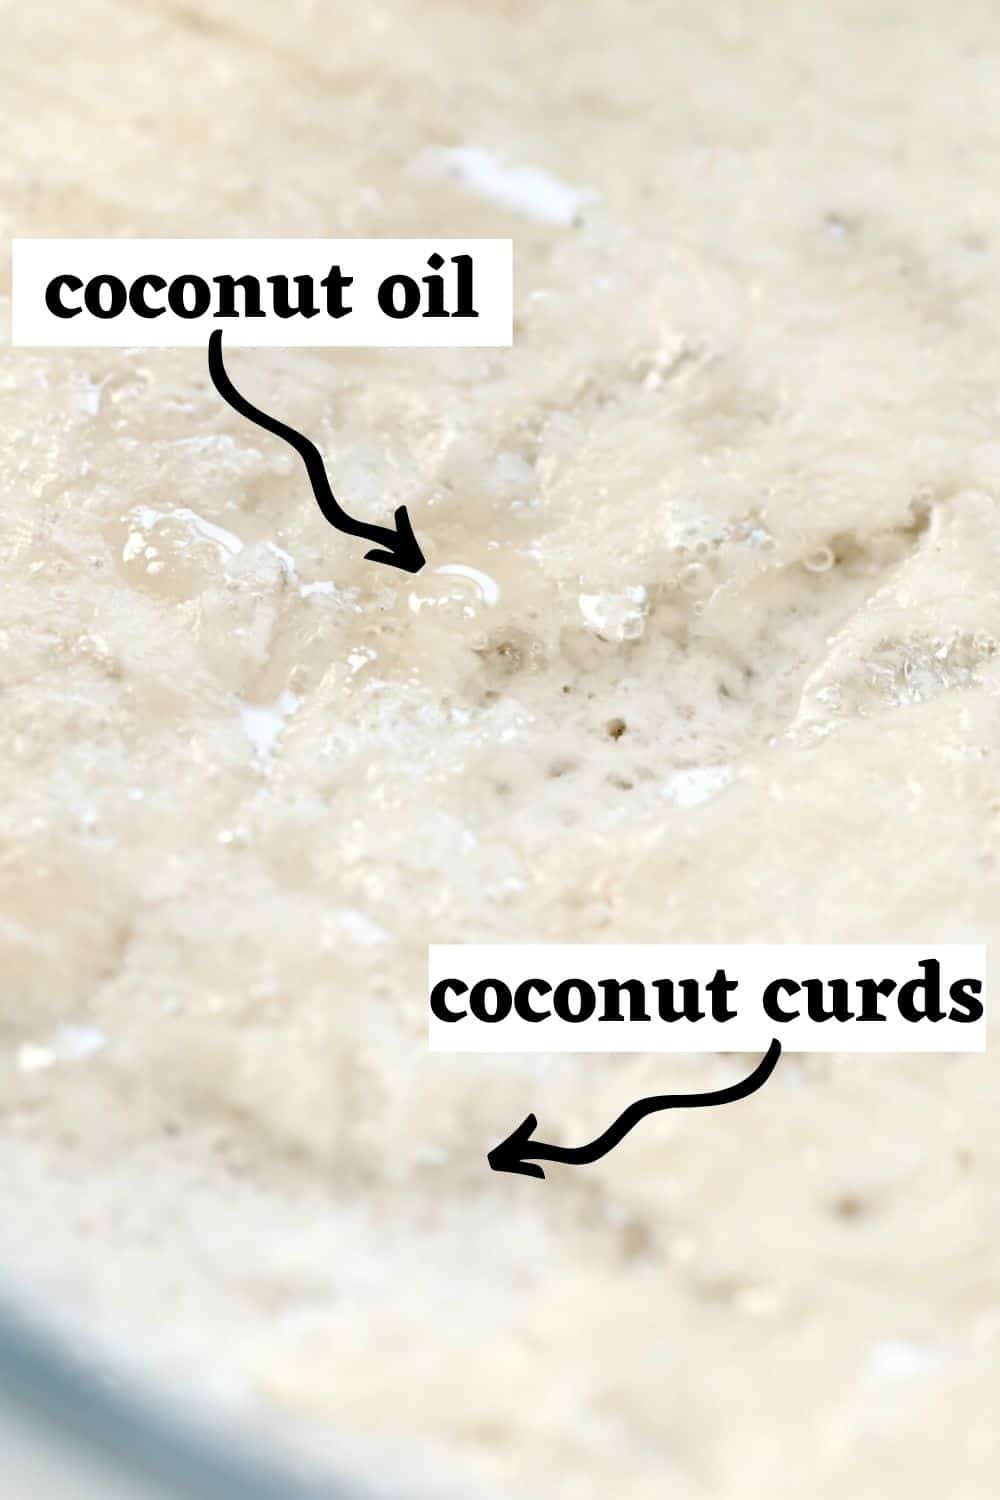 Showing the coconut oil and curds